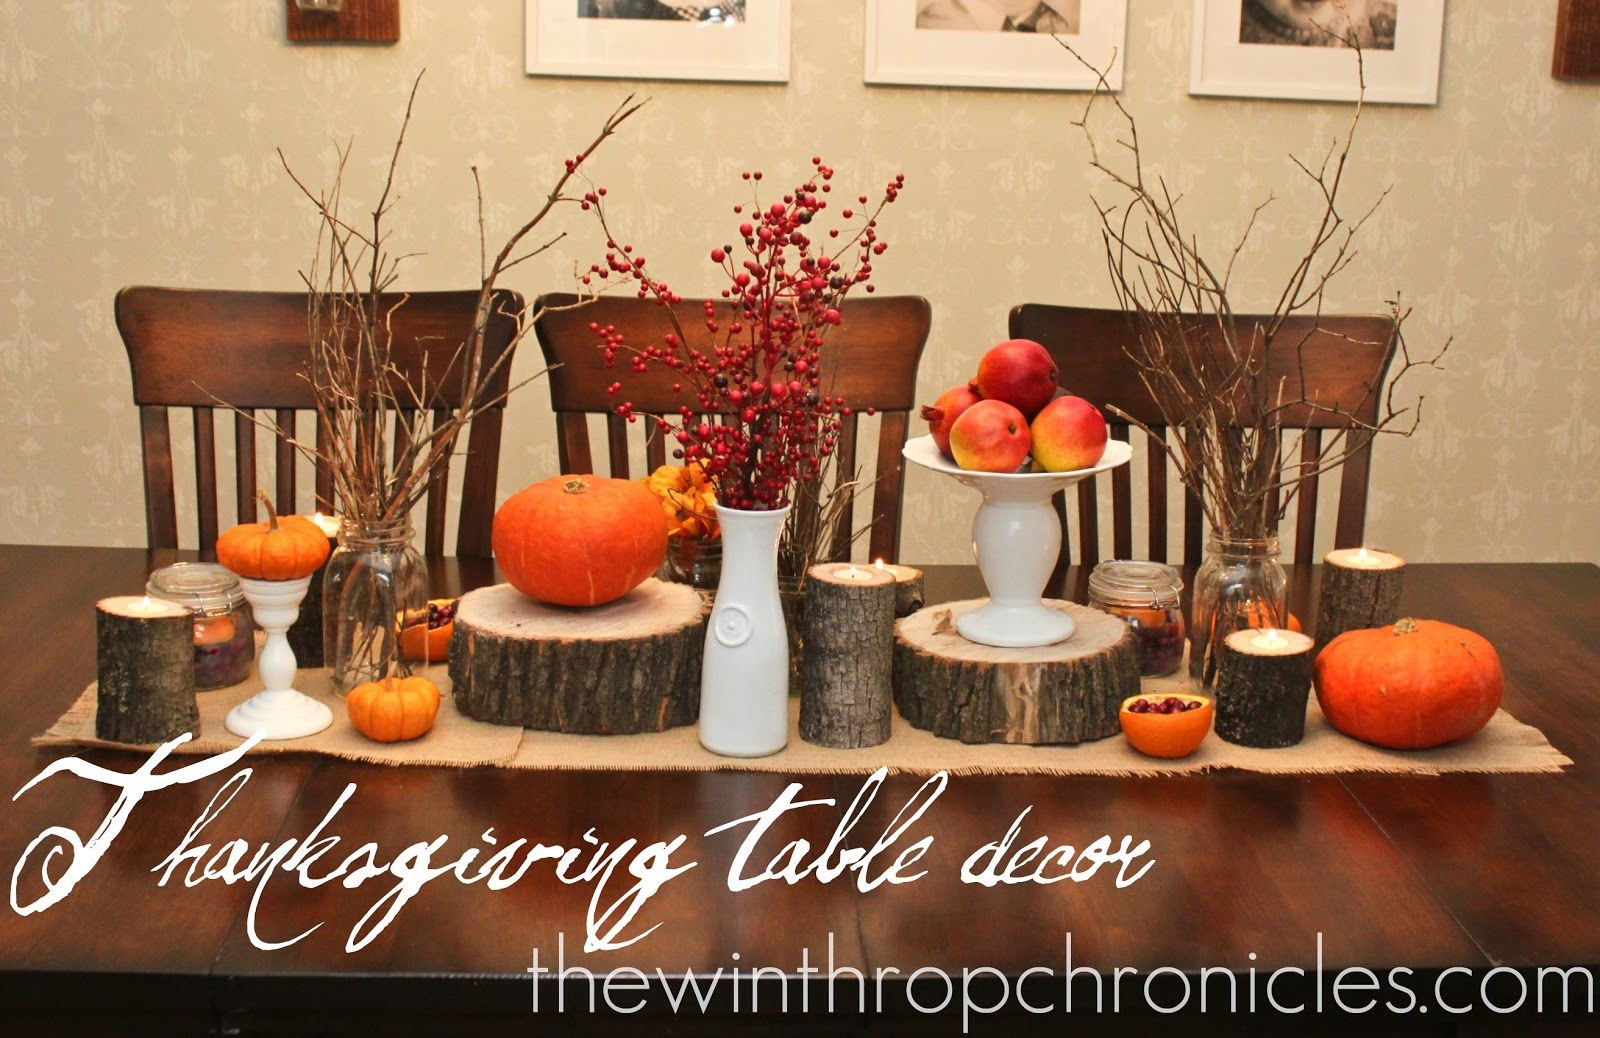 Charmant The Winthrop Chronicles: Thanksgiving Table Decor